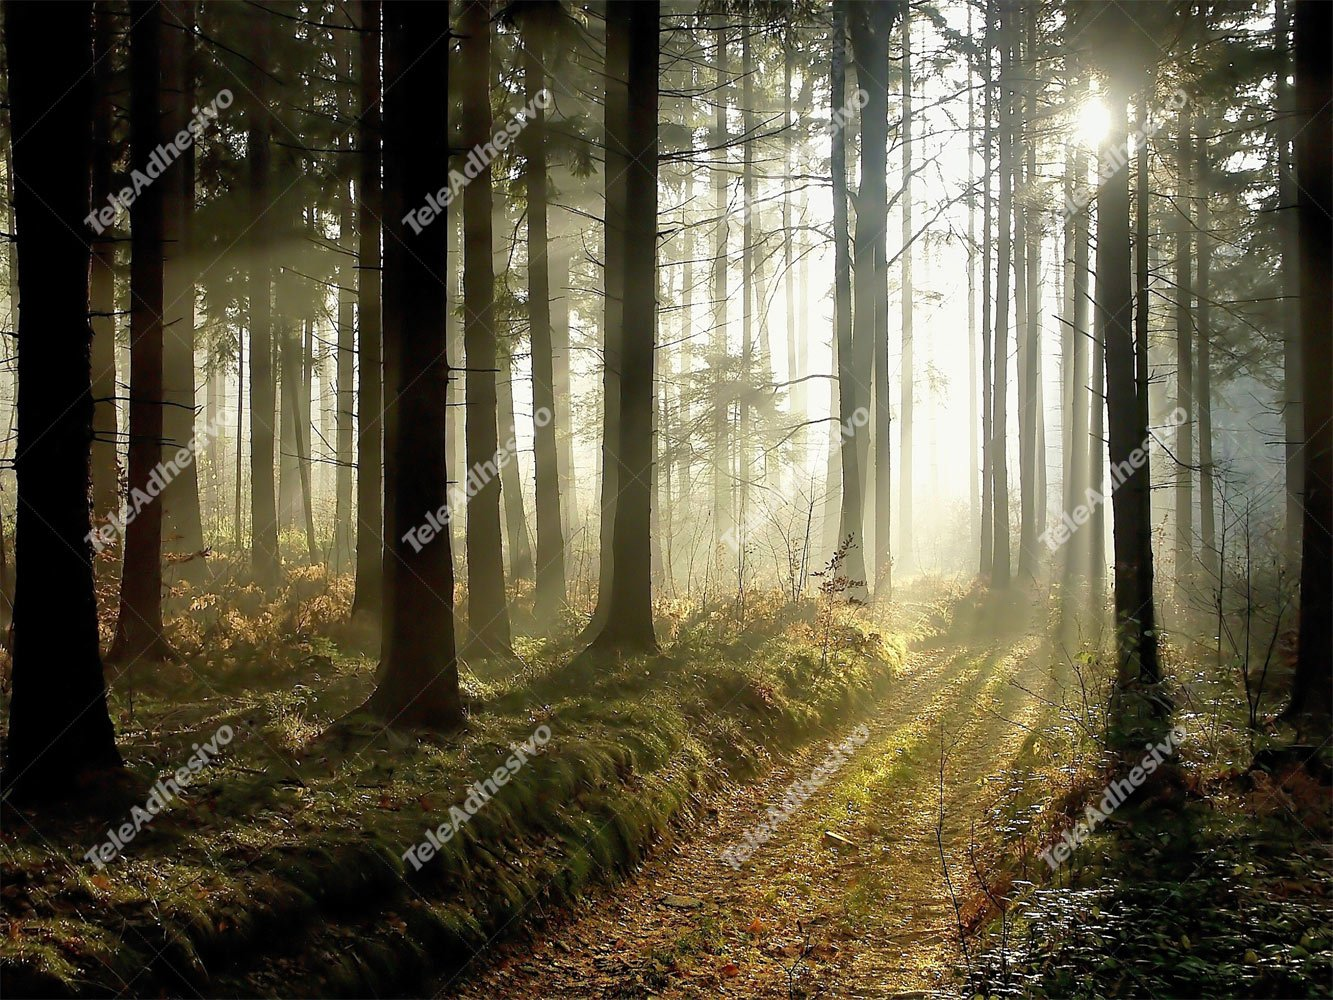 Wall Murals: Mysterious forest